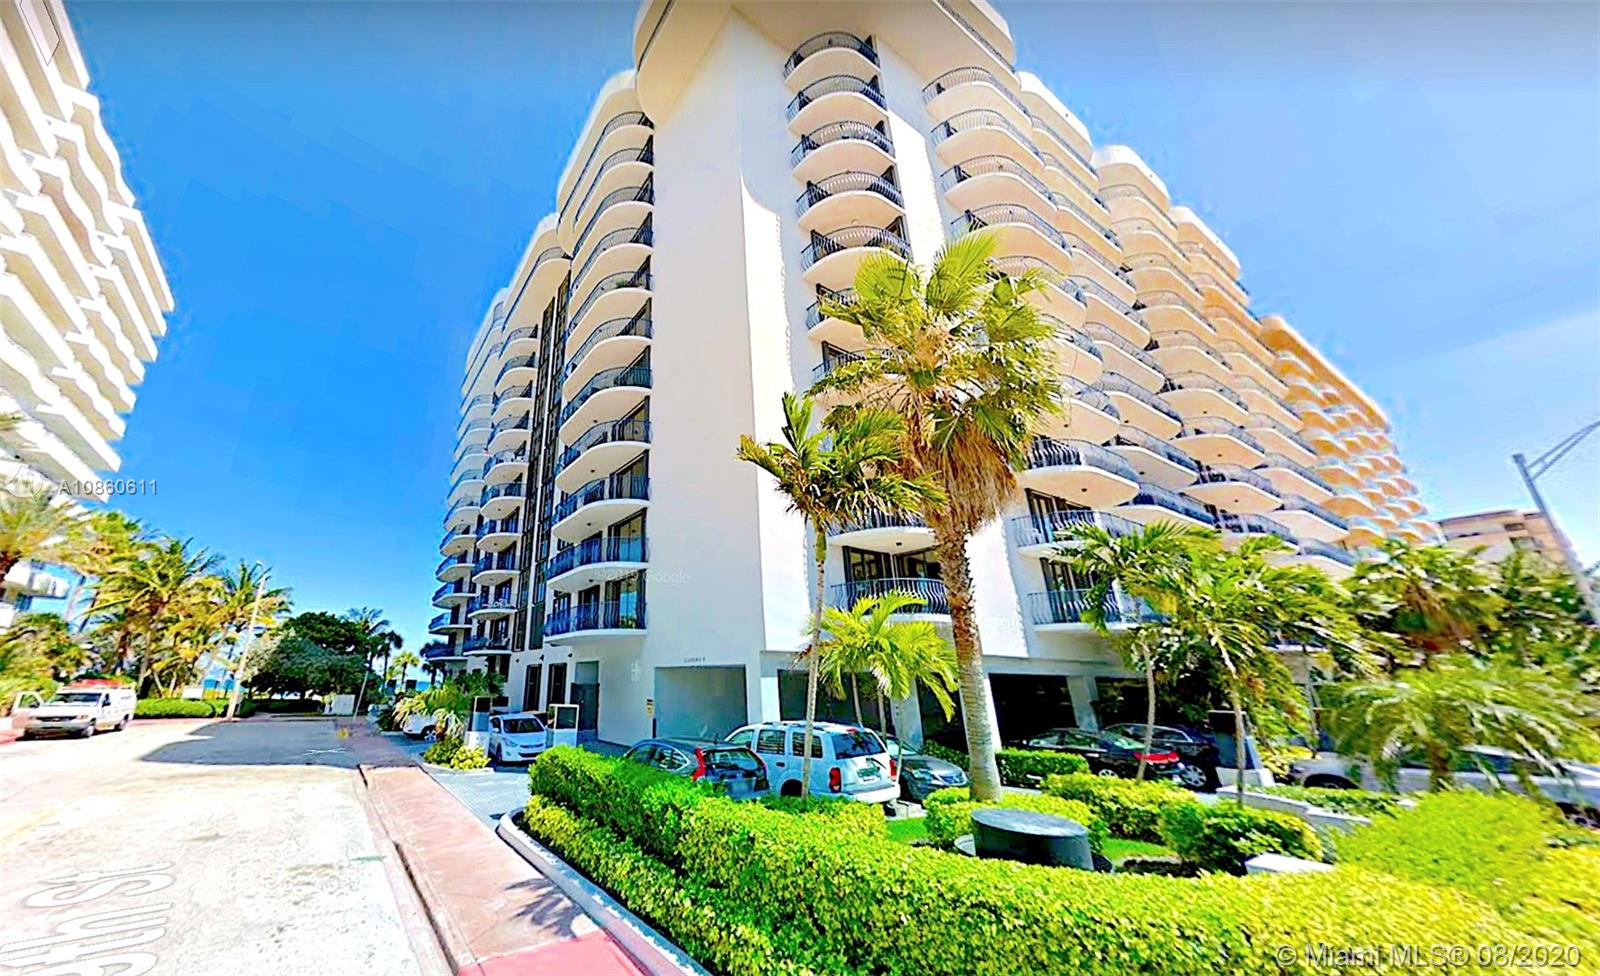 Champlain Towers North #1105 - 8877 Collins Ave #1105, Surfside, FL 33154